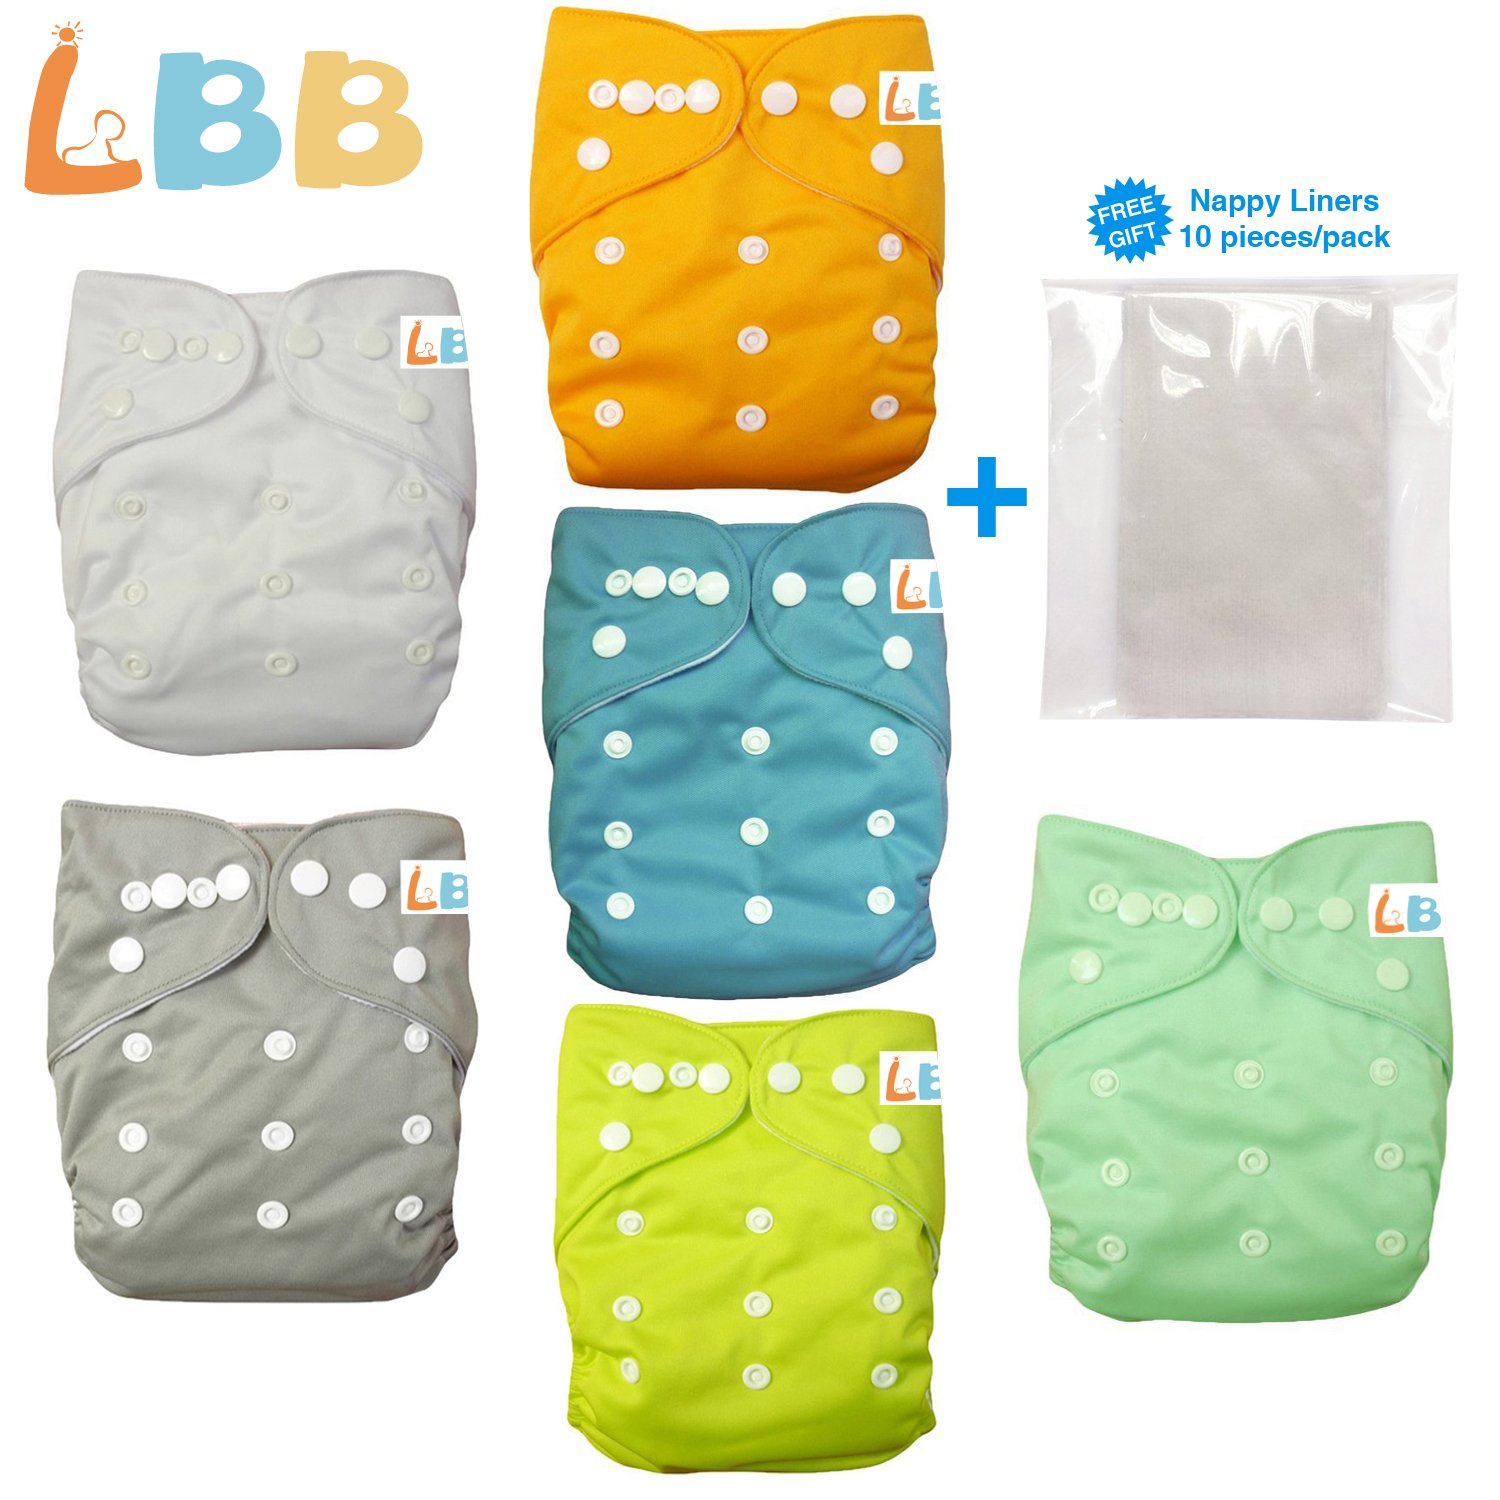 What is reusable diapers, and how to choose them